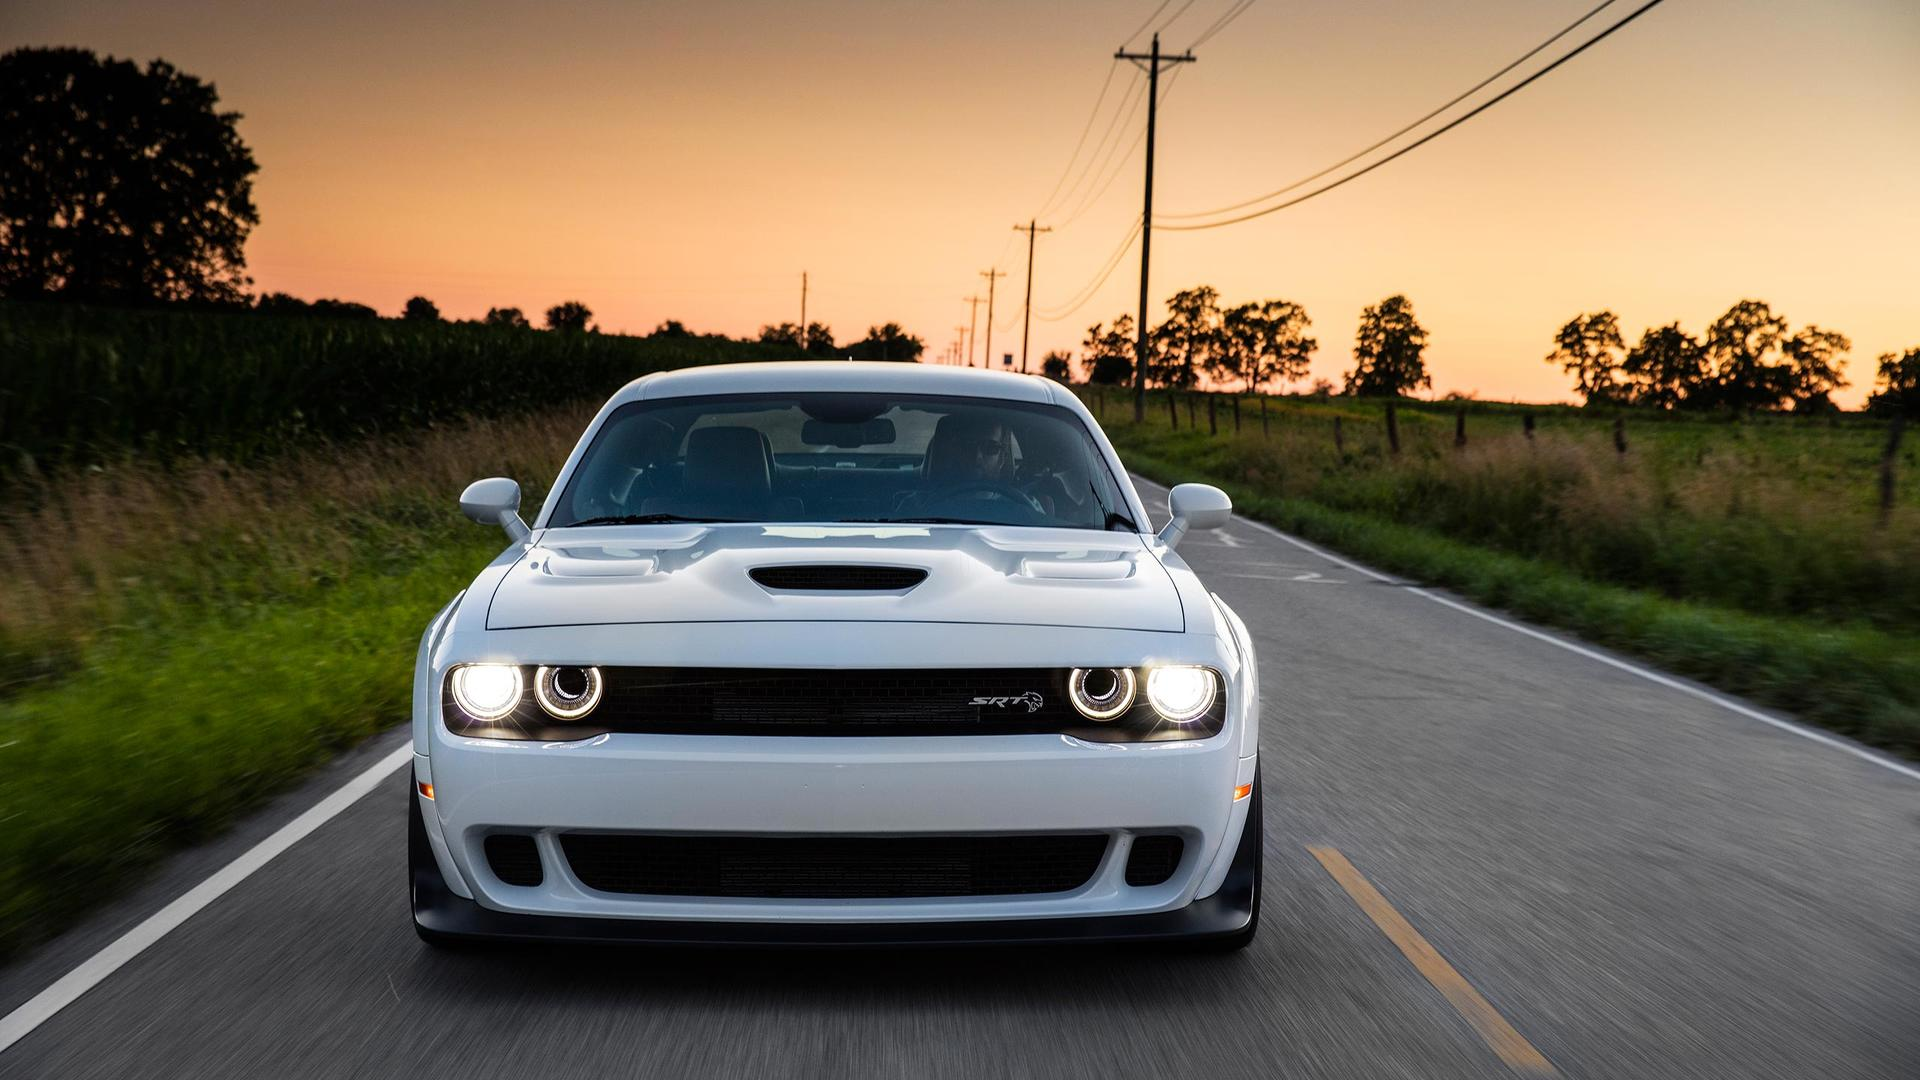 White Dodge Challenger Wallpapers Top Free White Dodge Challenger Backgrounds Wallpaperaccess